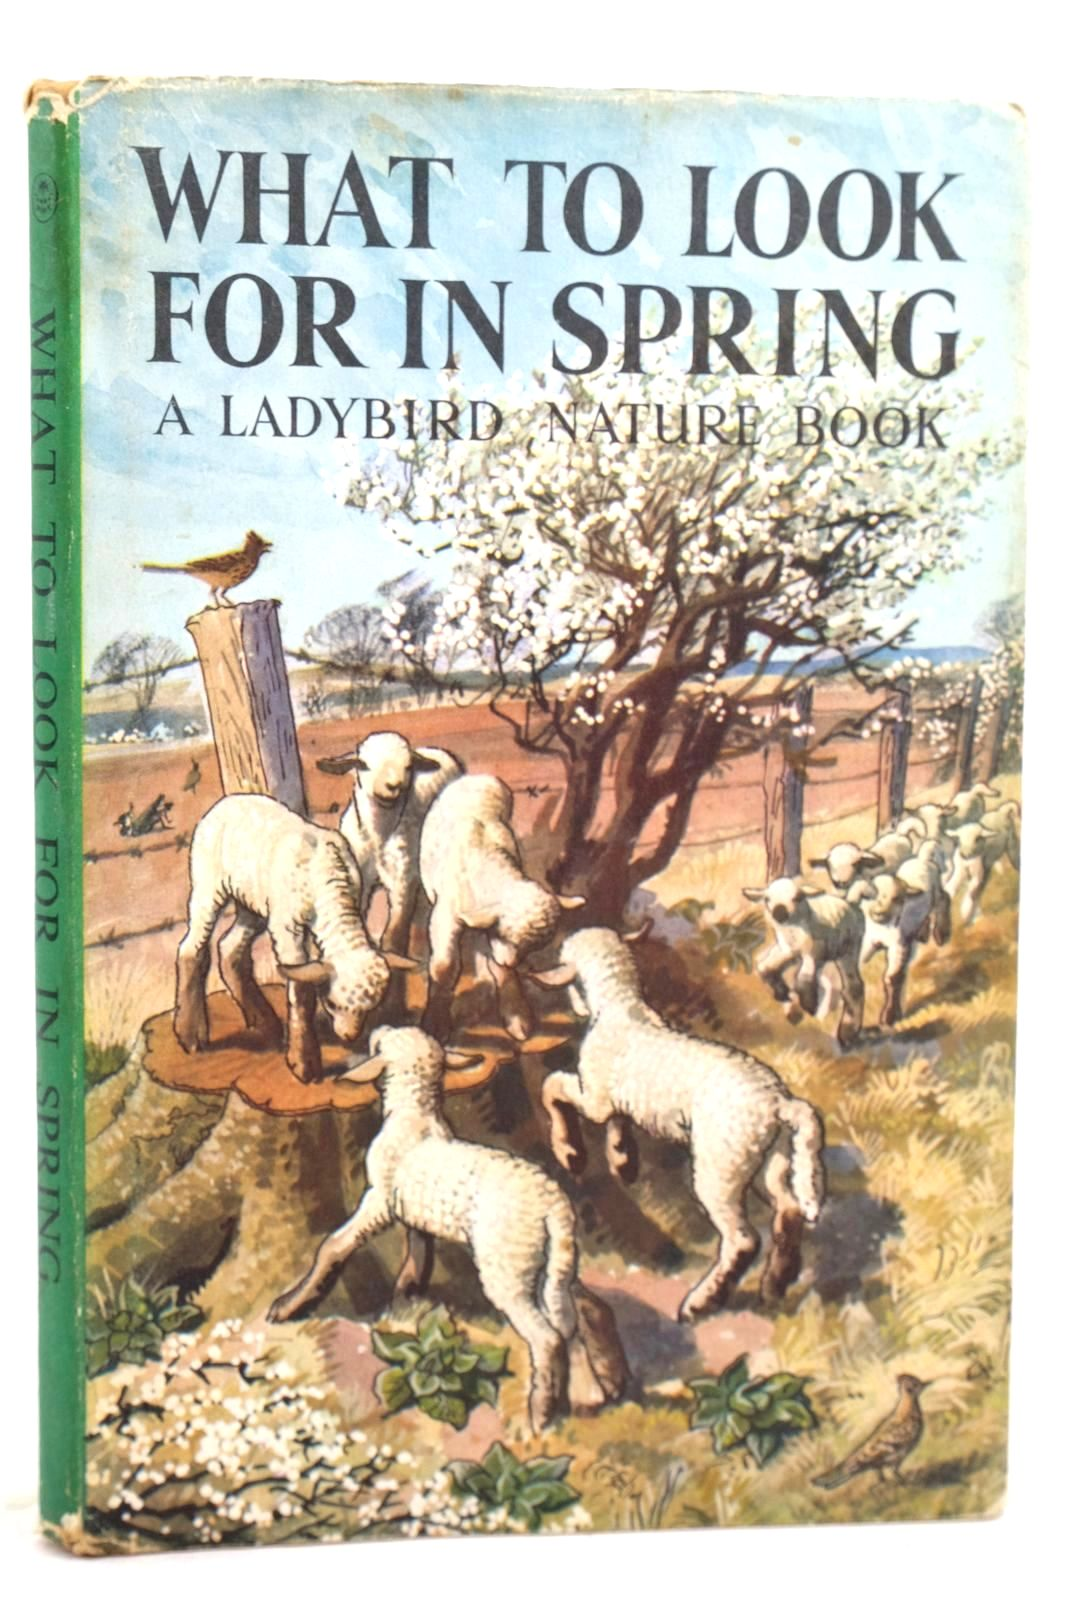 Photo of WHAT TO LOOK FOR IN SPRING written by Watson, E.L. Grant illustrated by Tunnicliffe, C.F. published by Wills & Hepworth Ltd. (STOCK CODE: 1318835)  for sale by Stella & Rose's Books